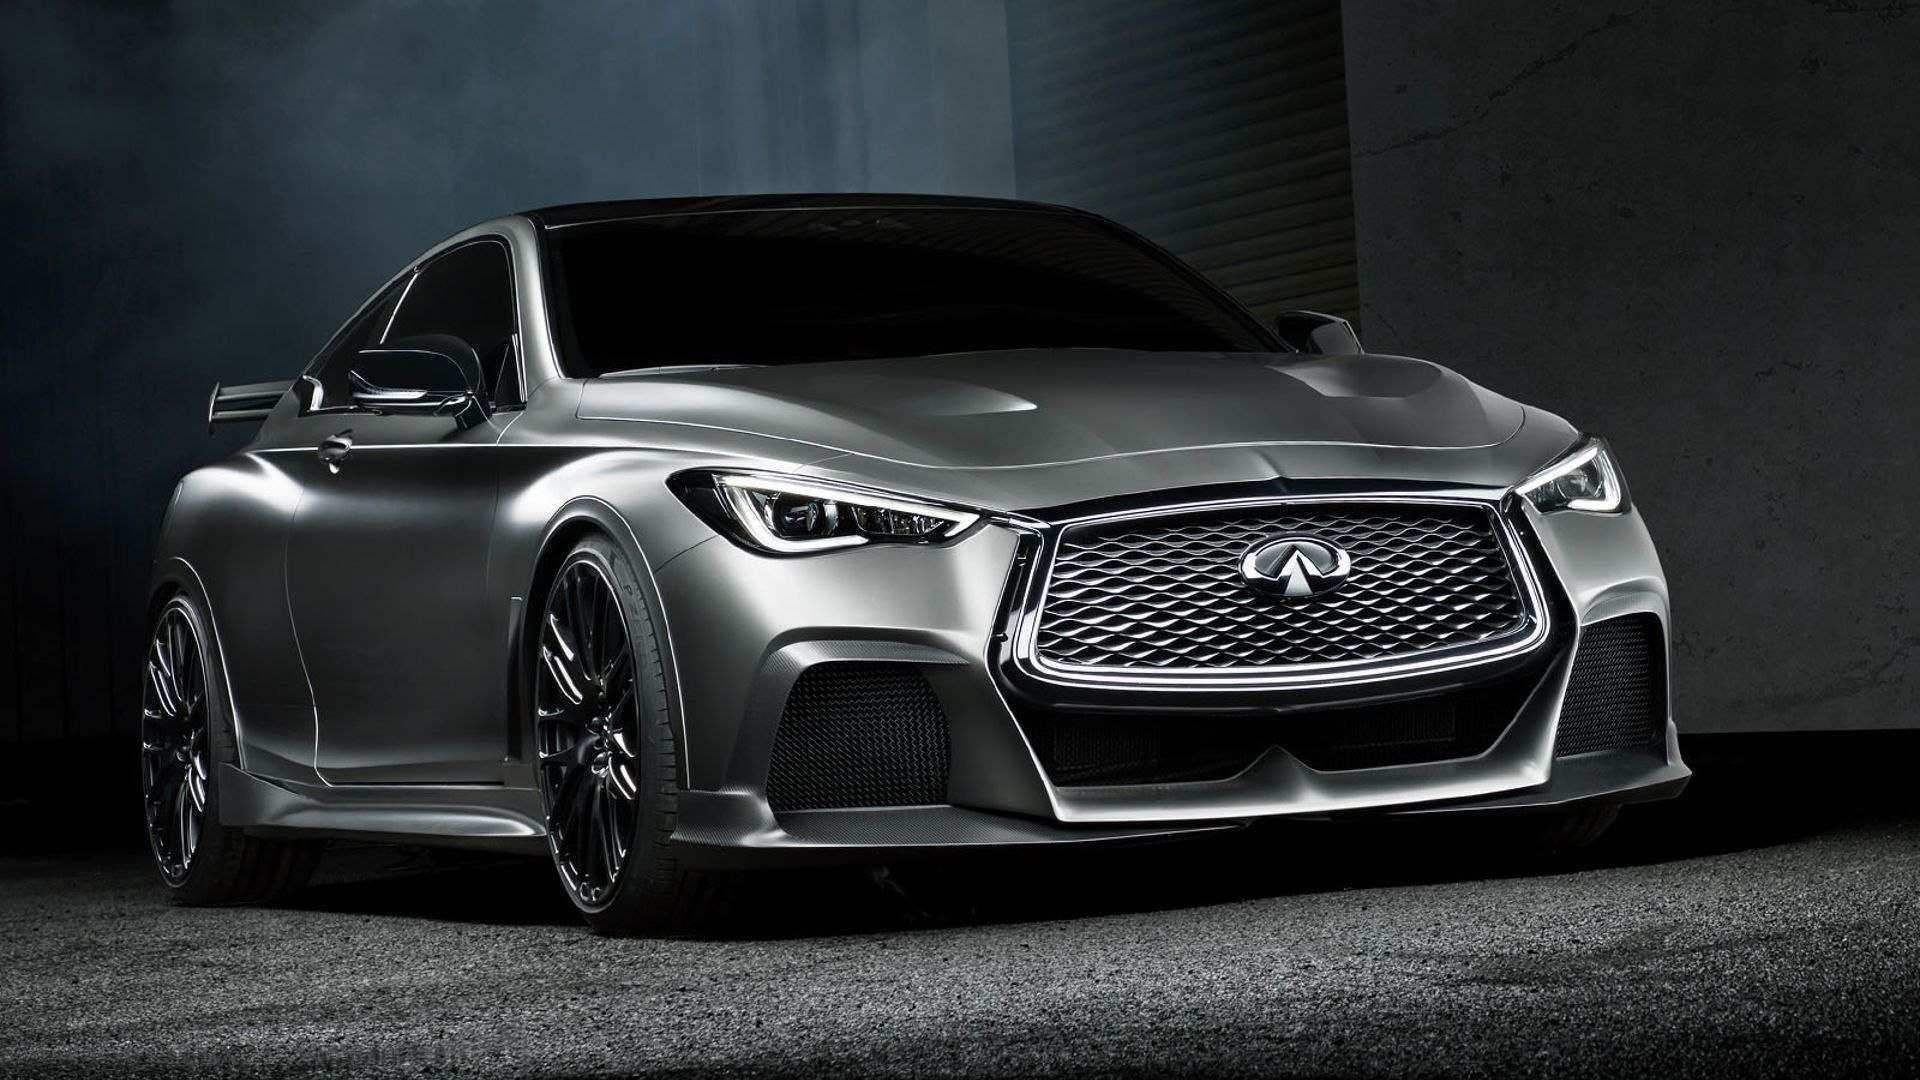 84 The Best Infiniti Coupe 2020 Speed Test